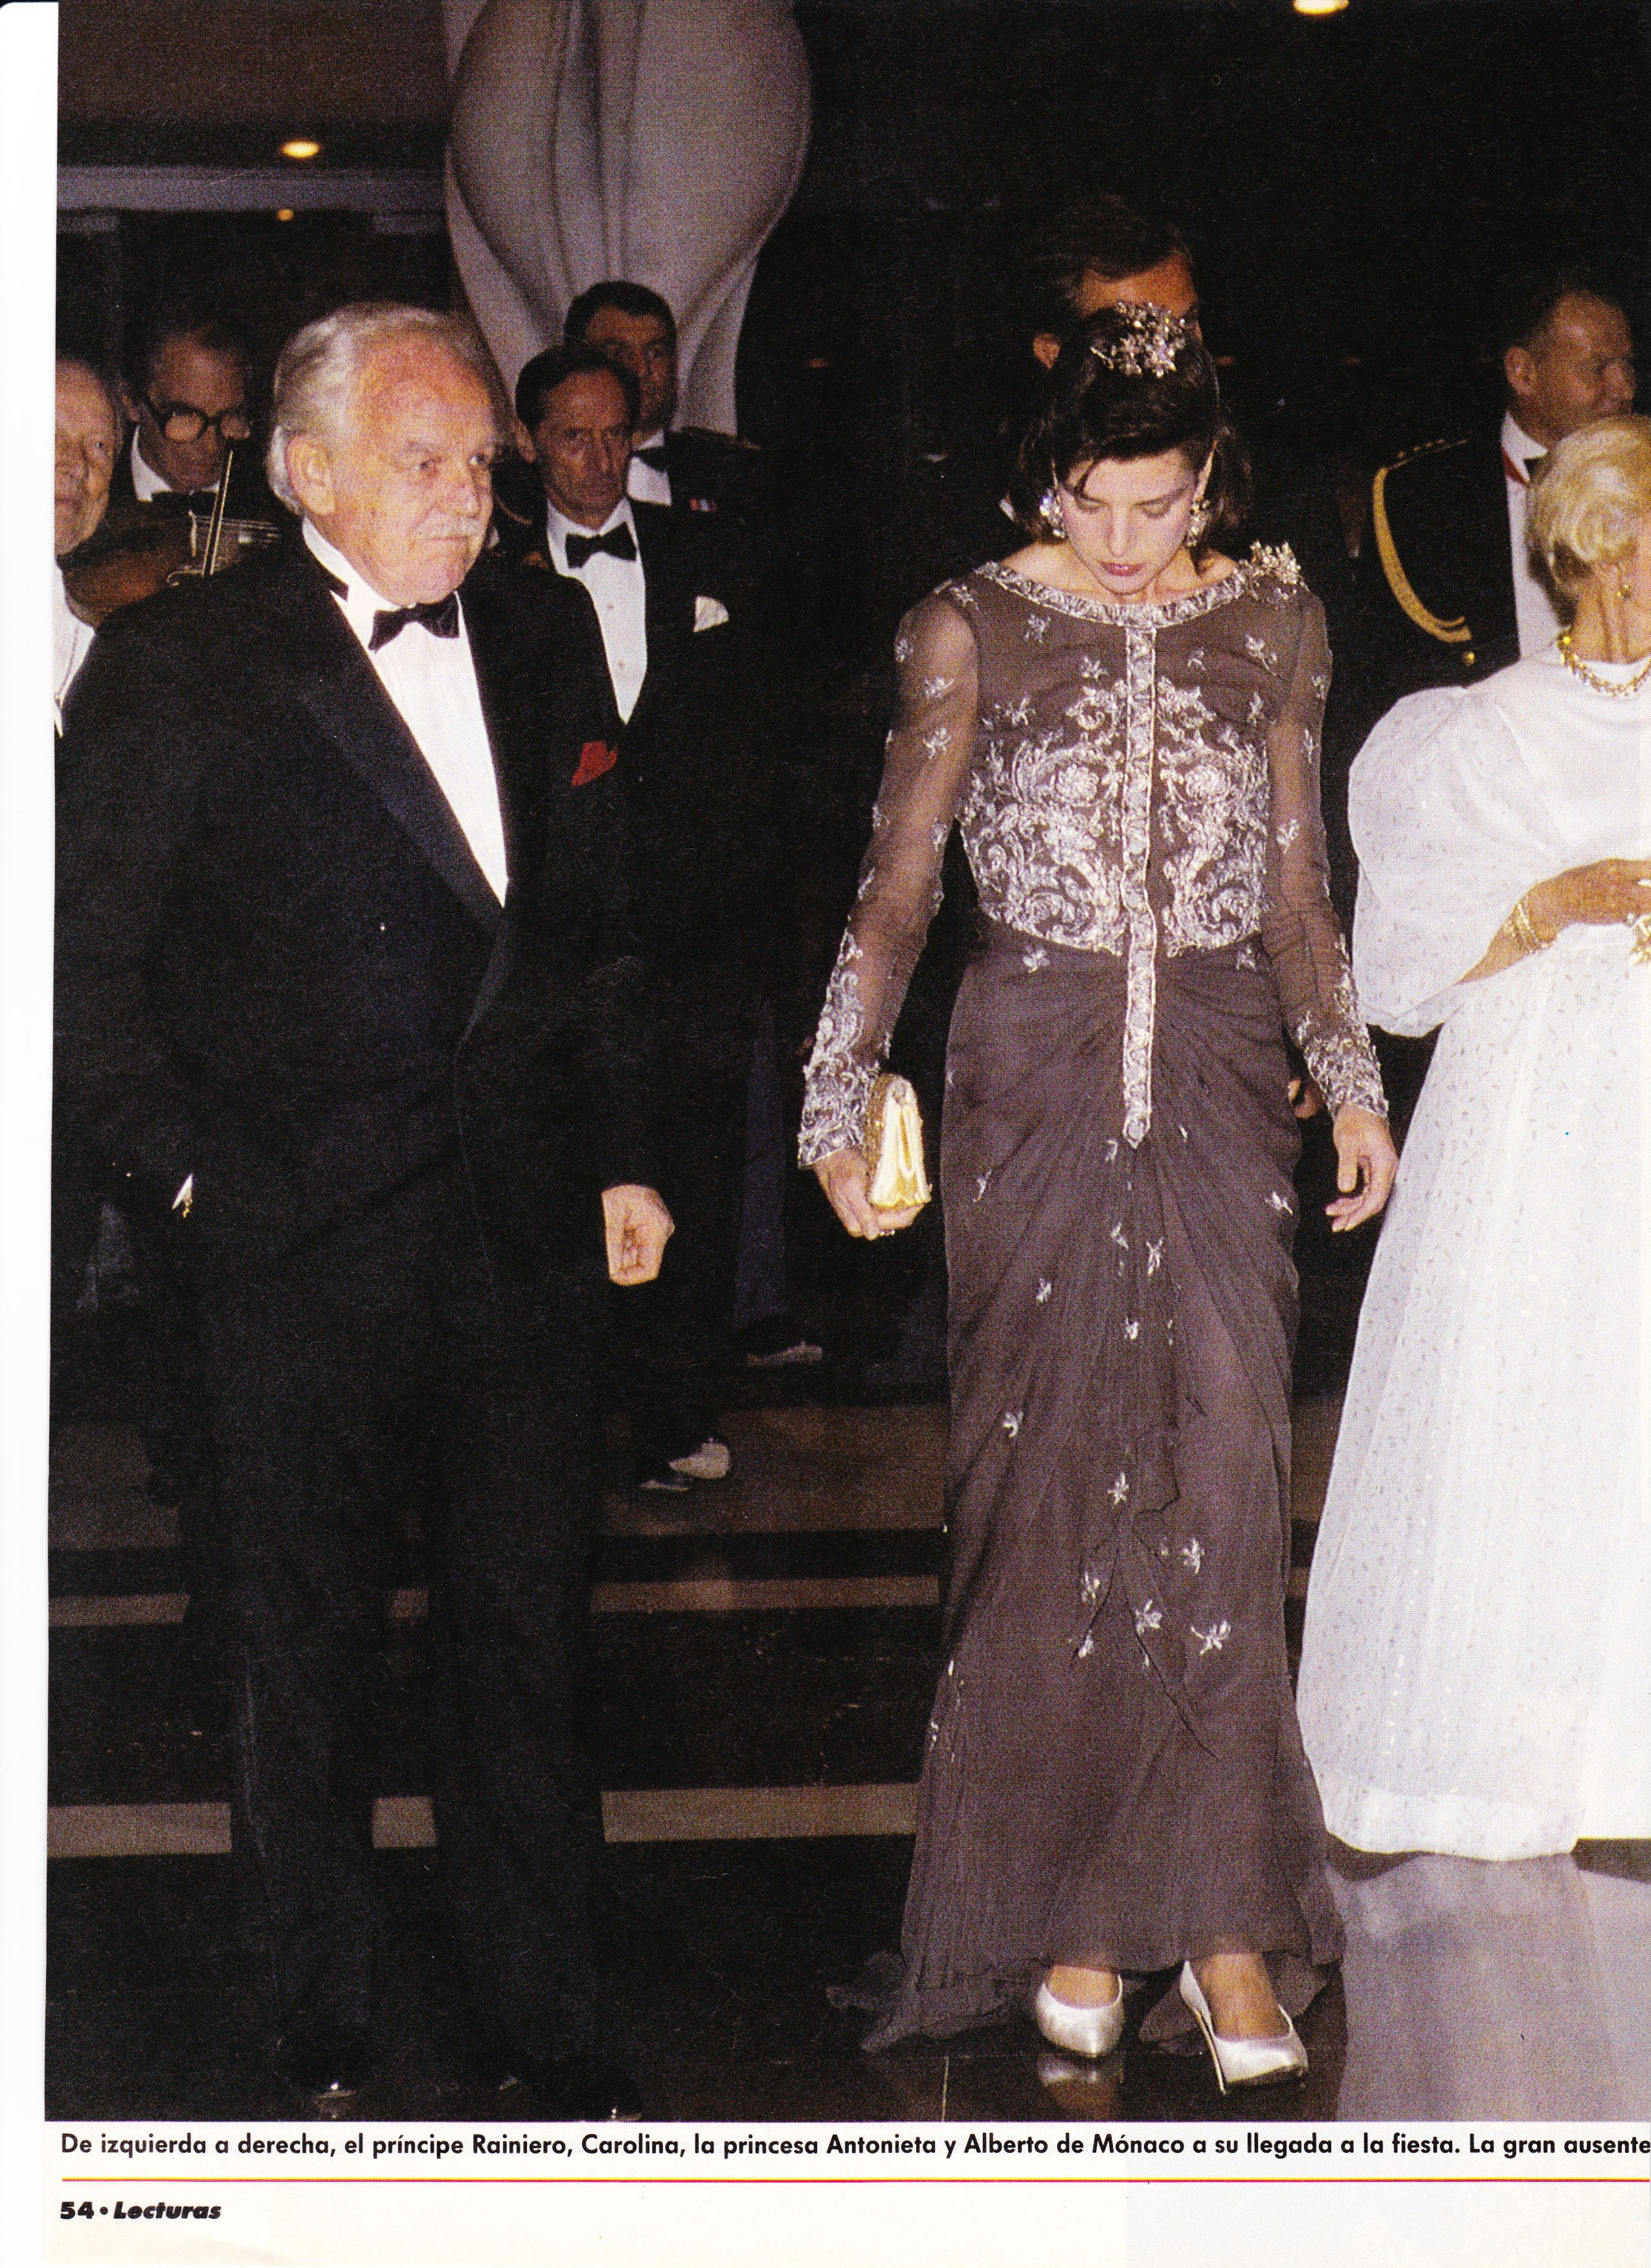 Princess Caroline of Monaco at the Rose Ball- Lecturas-March 24,1990.page 3